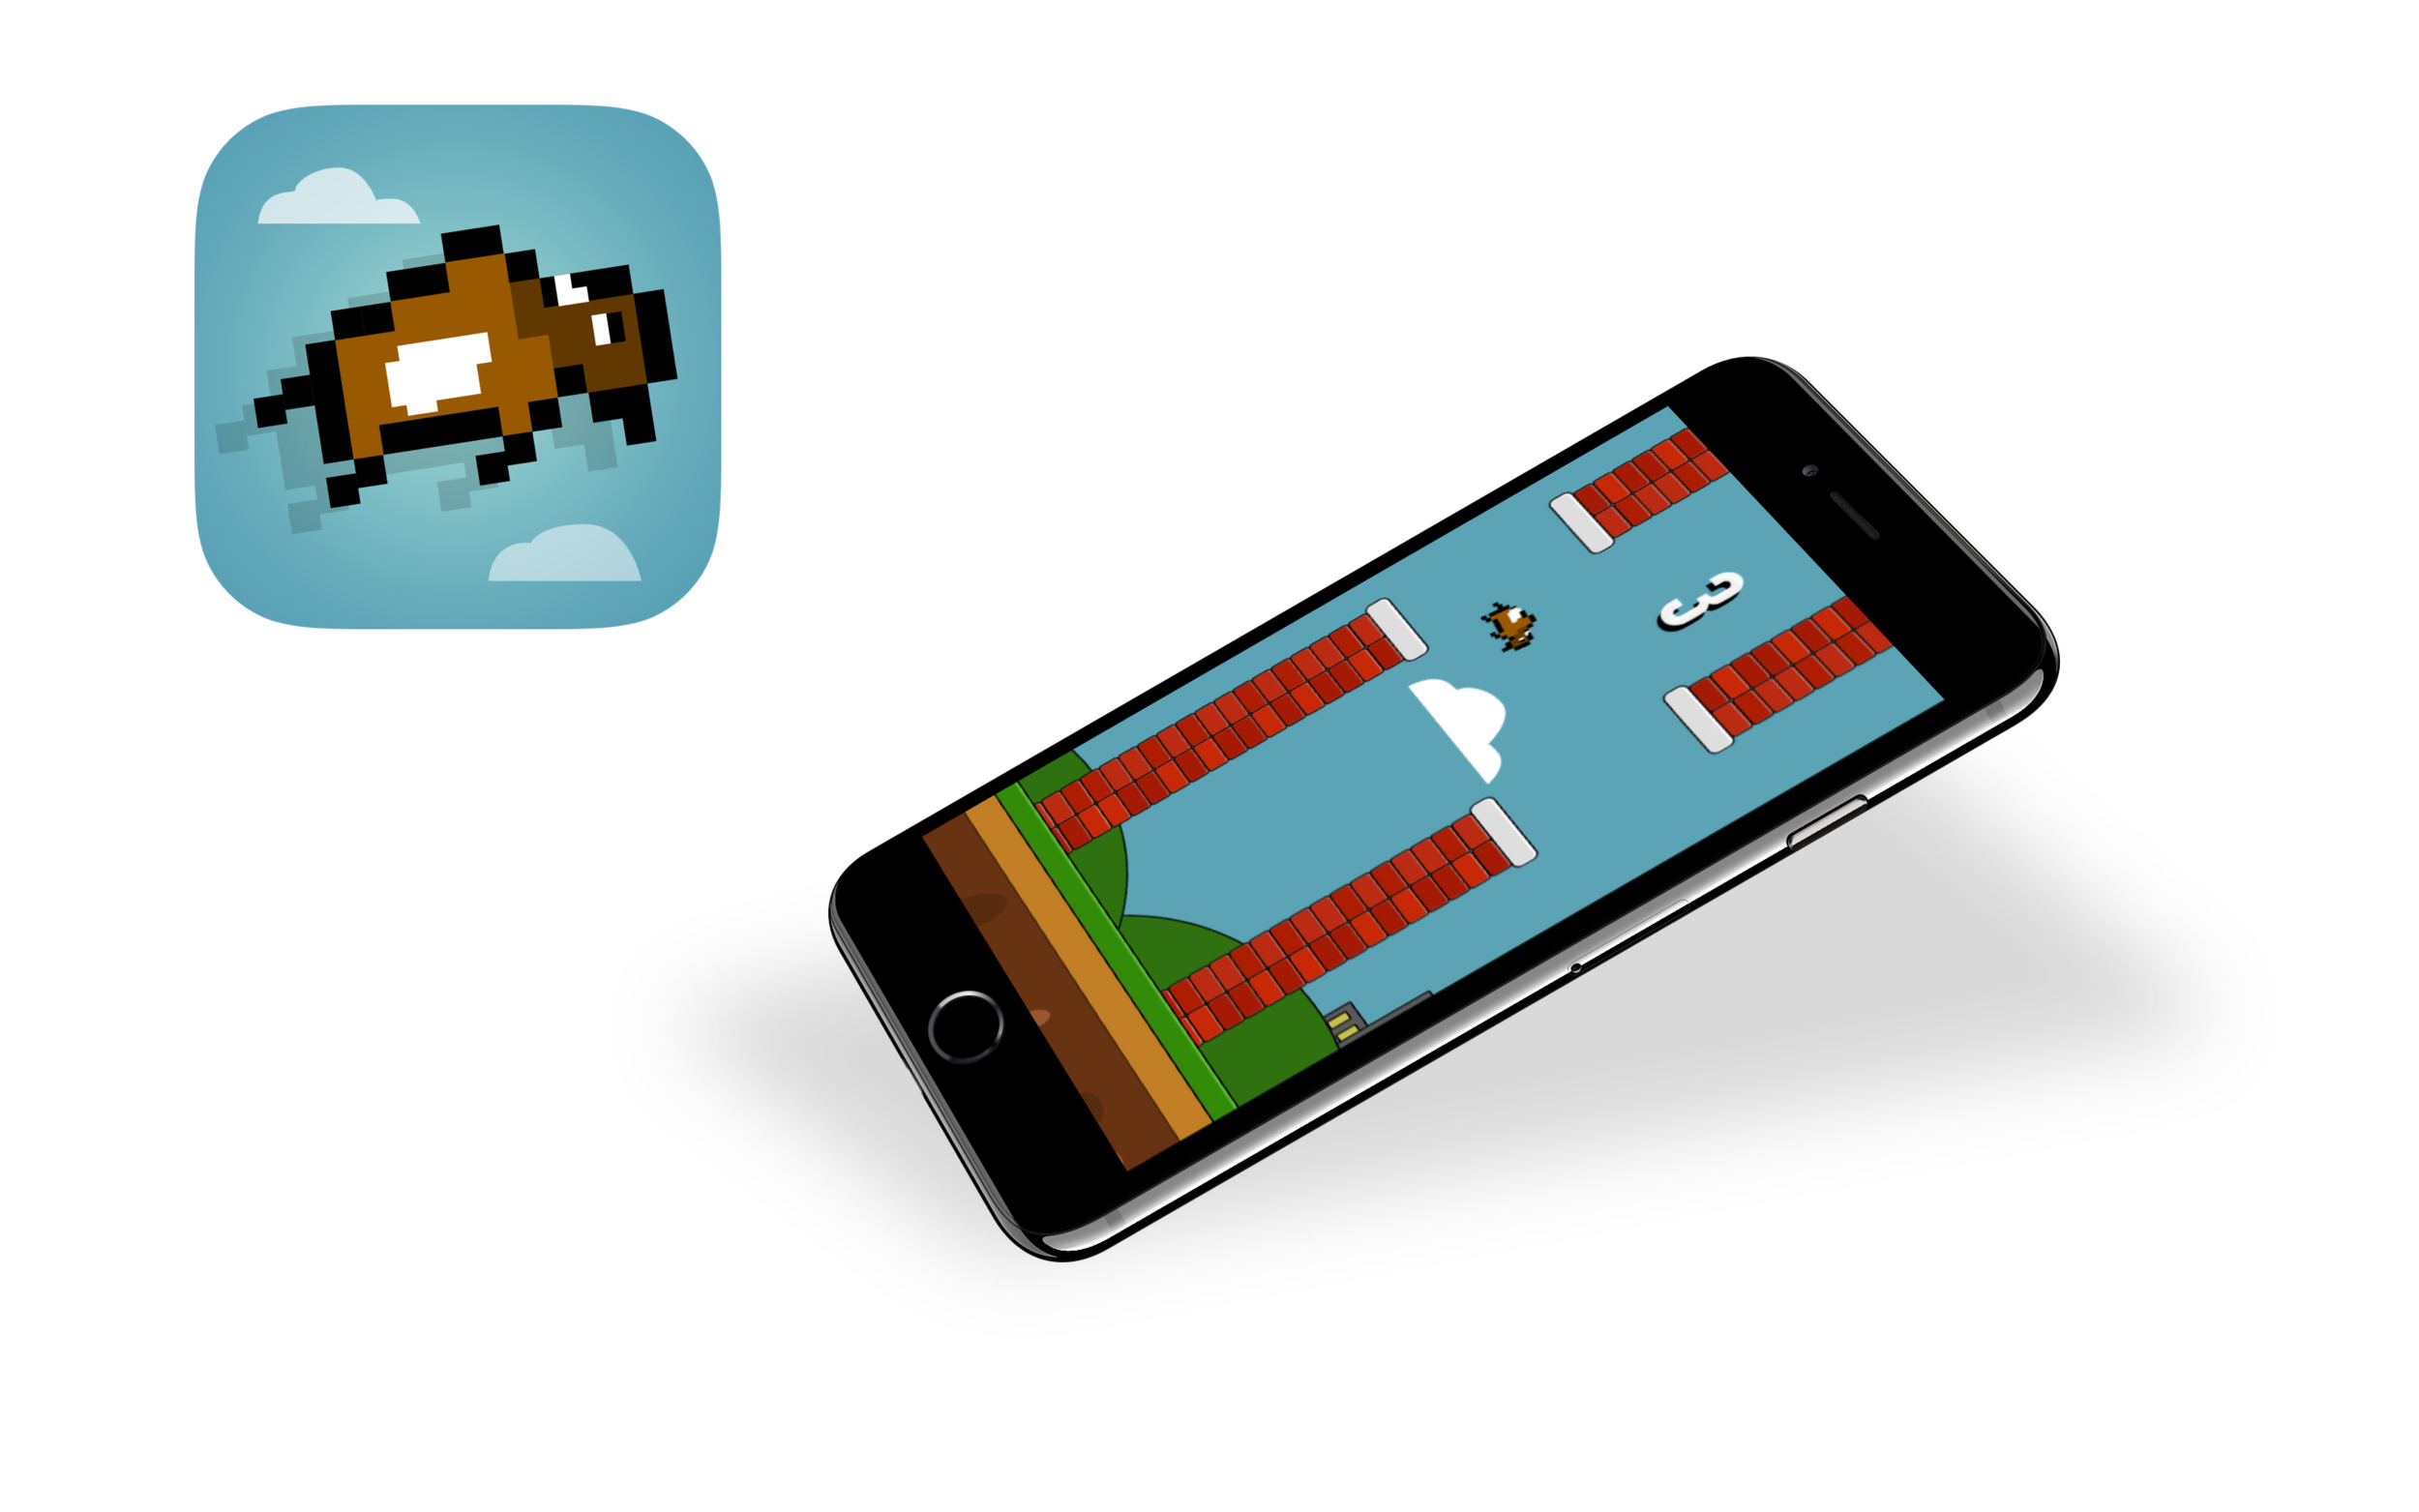 Buffalo Wings: Much-better-than-Flappy-Bird game